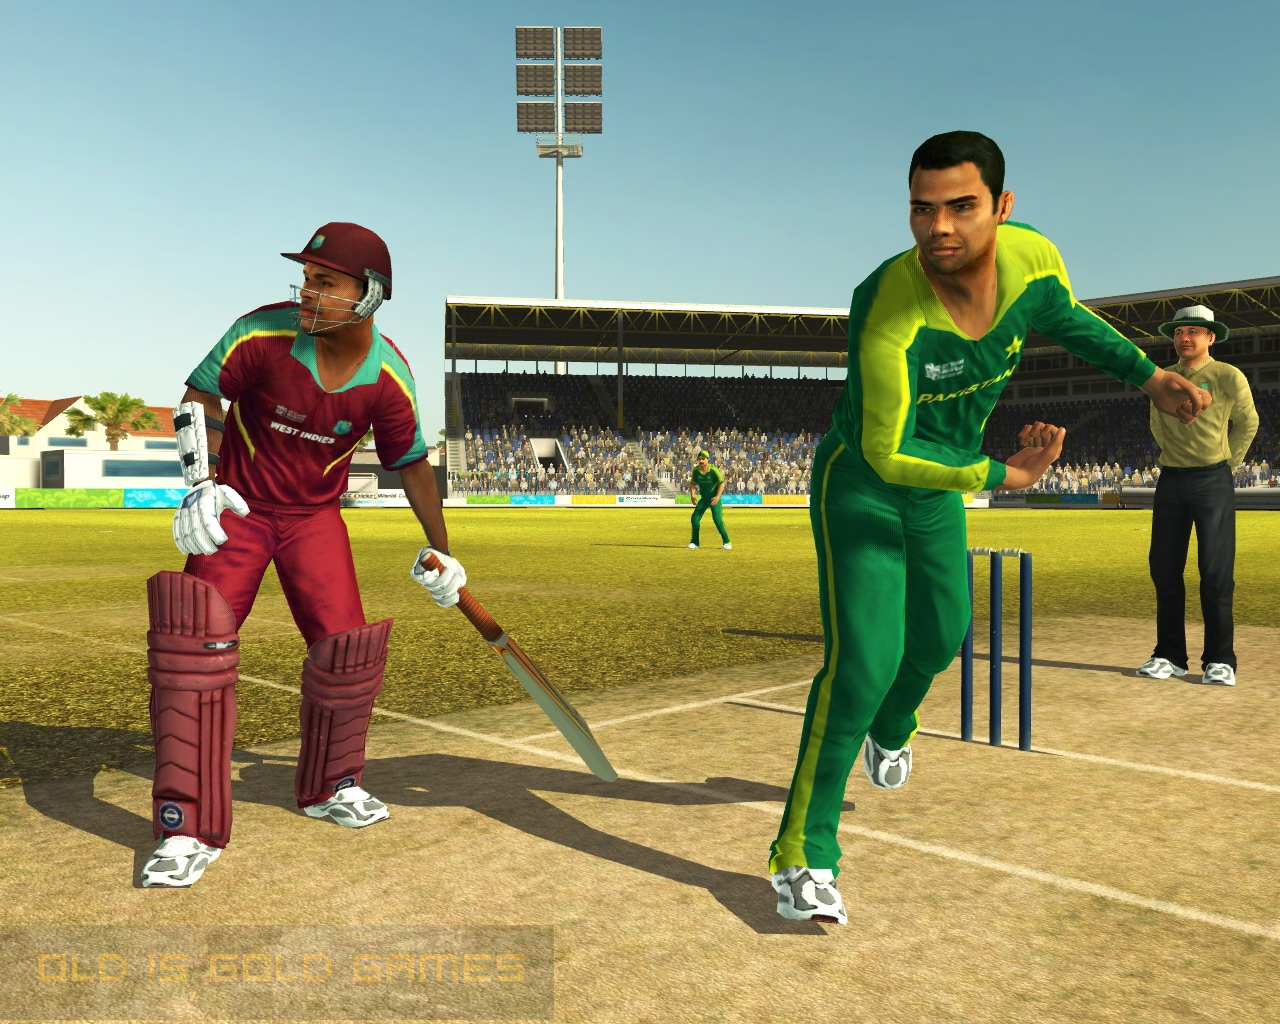 Brian Lara International Cricket 2007 Download For Free